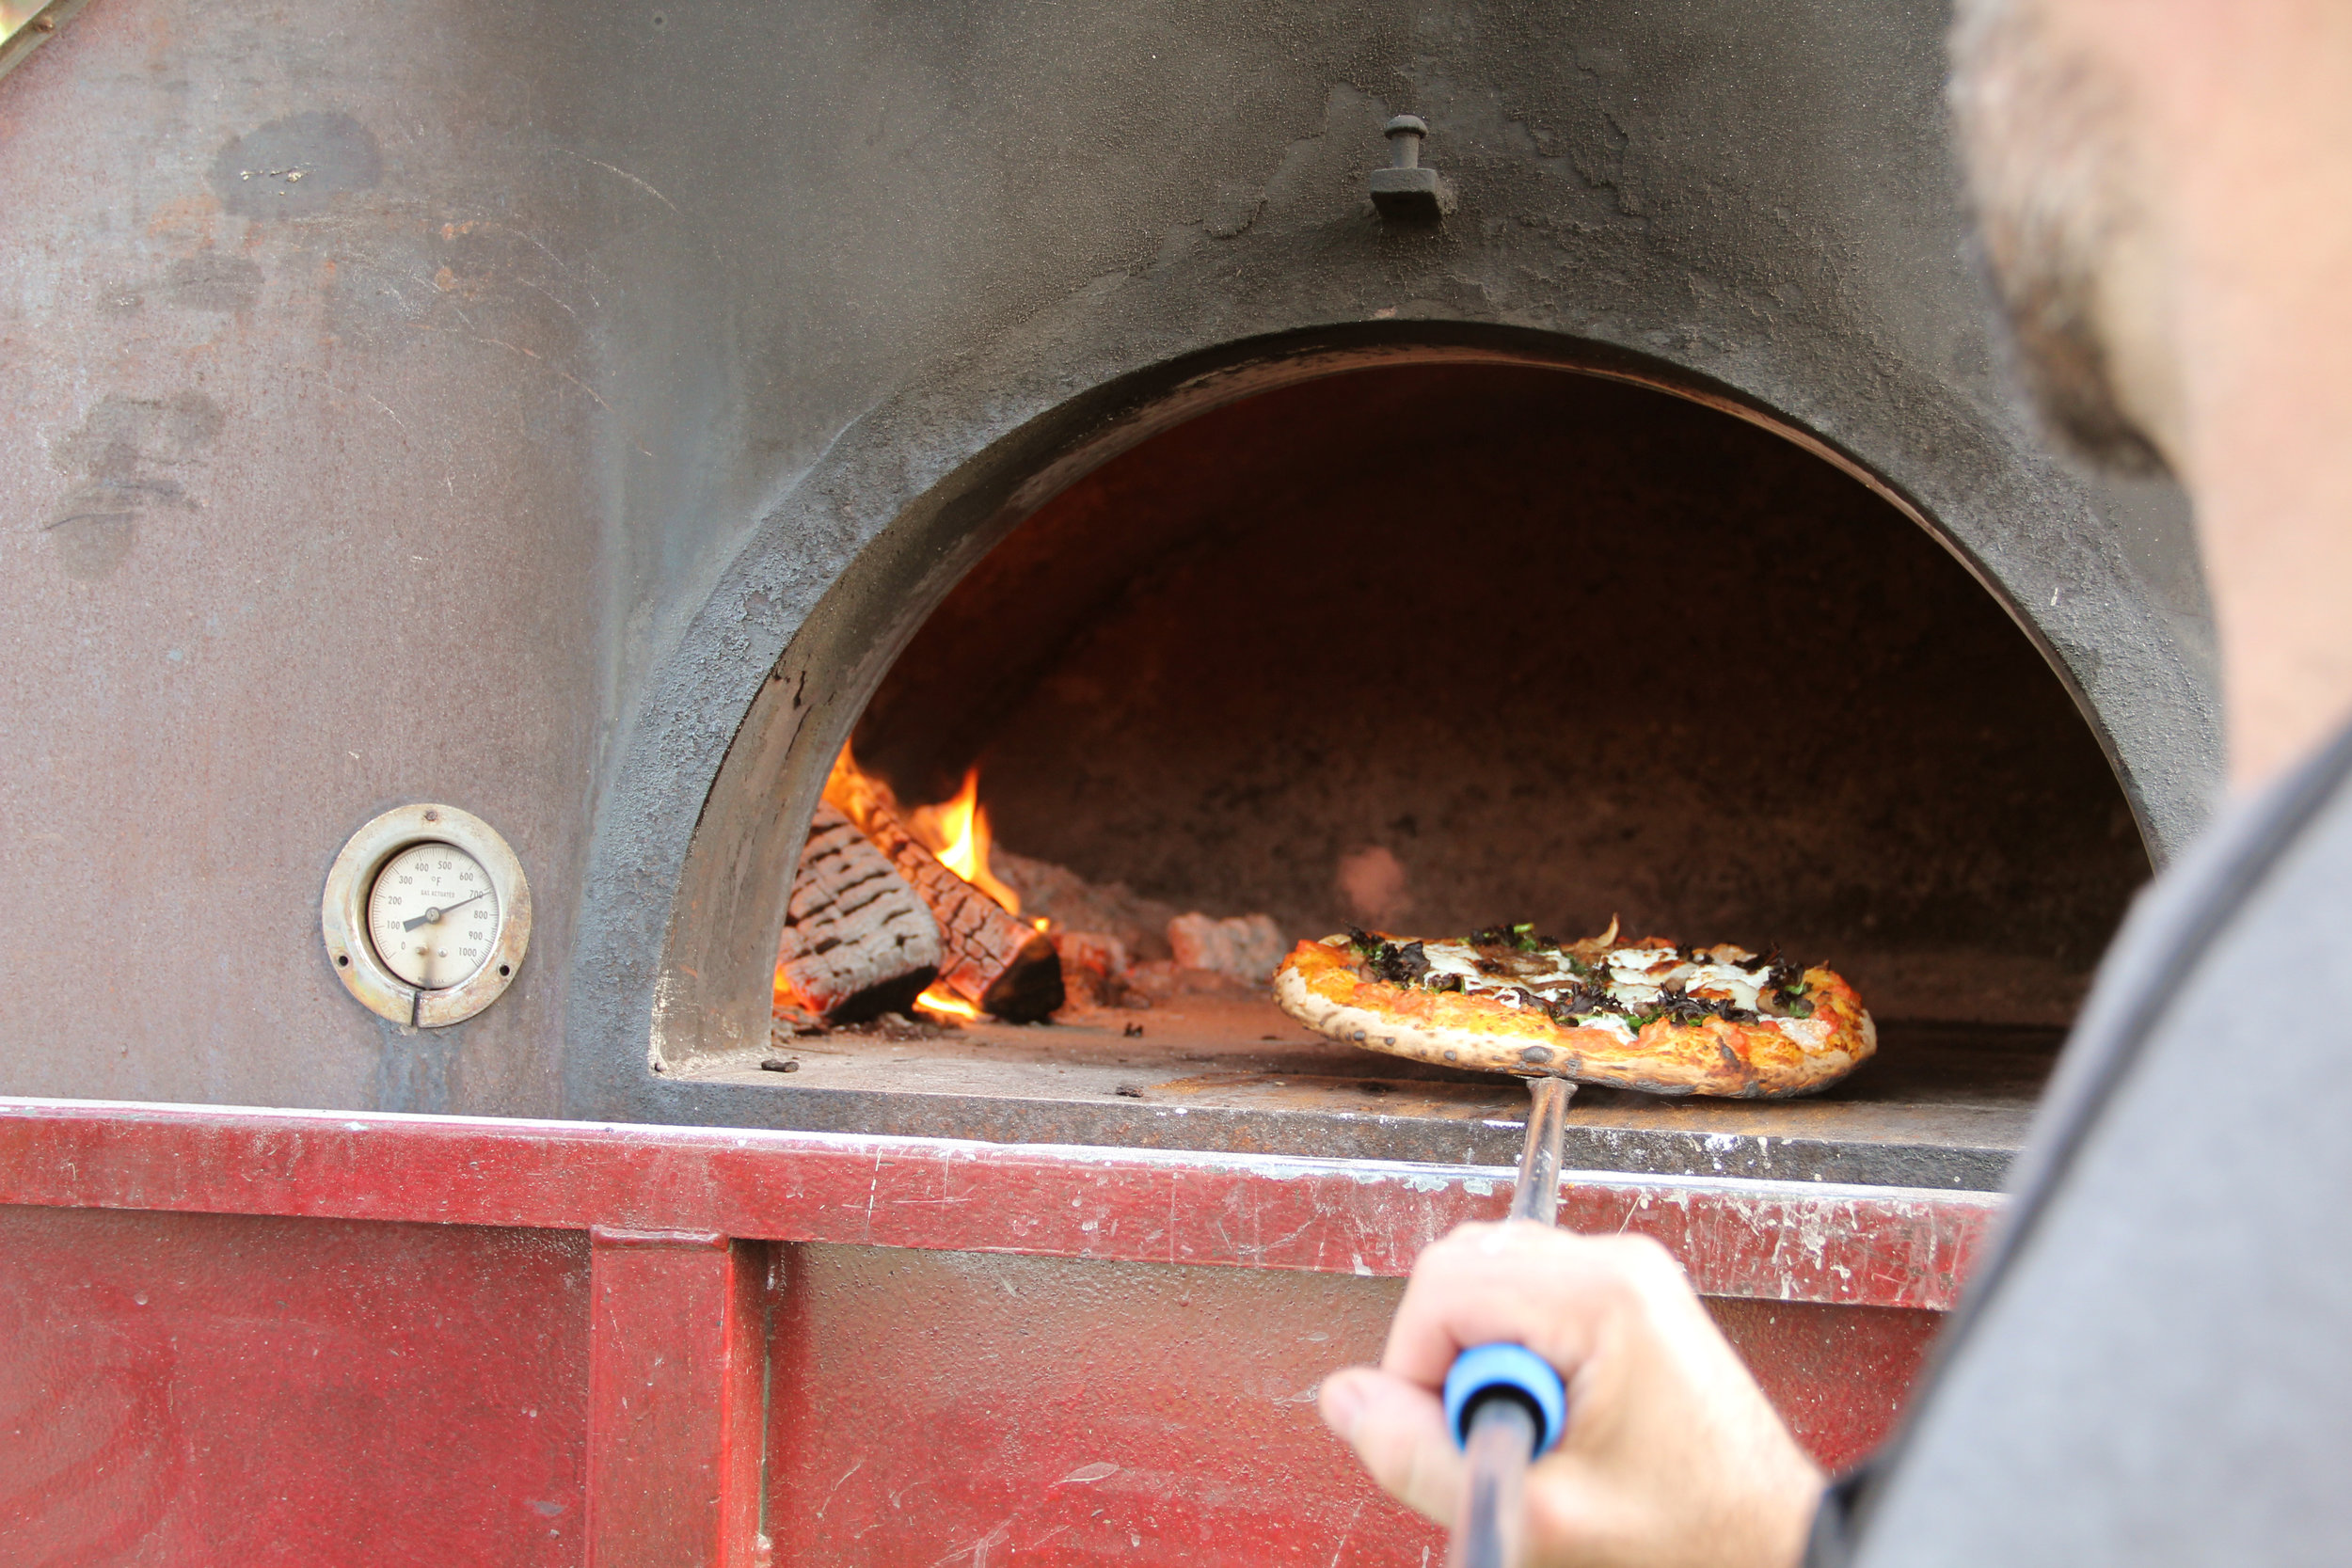 Doug Cullen Wood Fired Pizza Truck Catering Events Weddings Hudson Valley Westchester Hastings on Hudson NYC Caterer.jpg